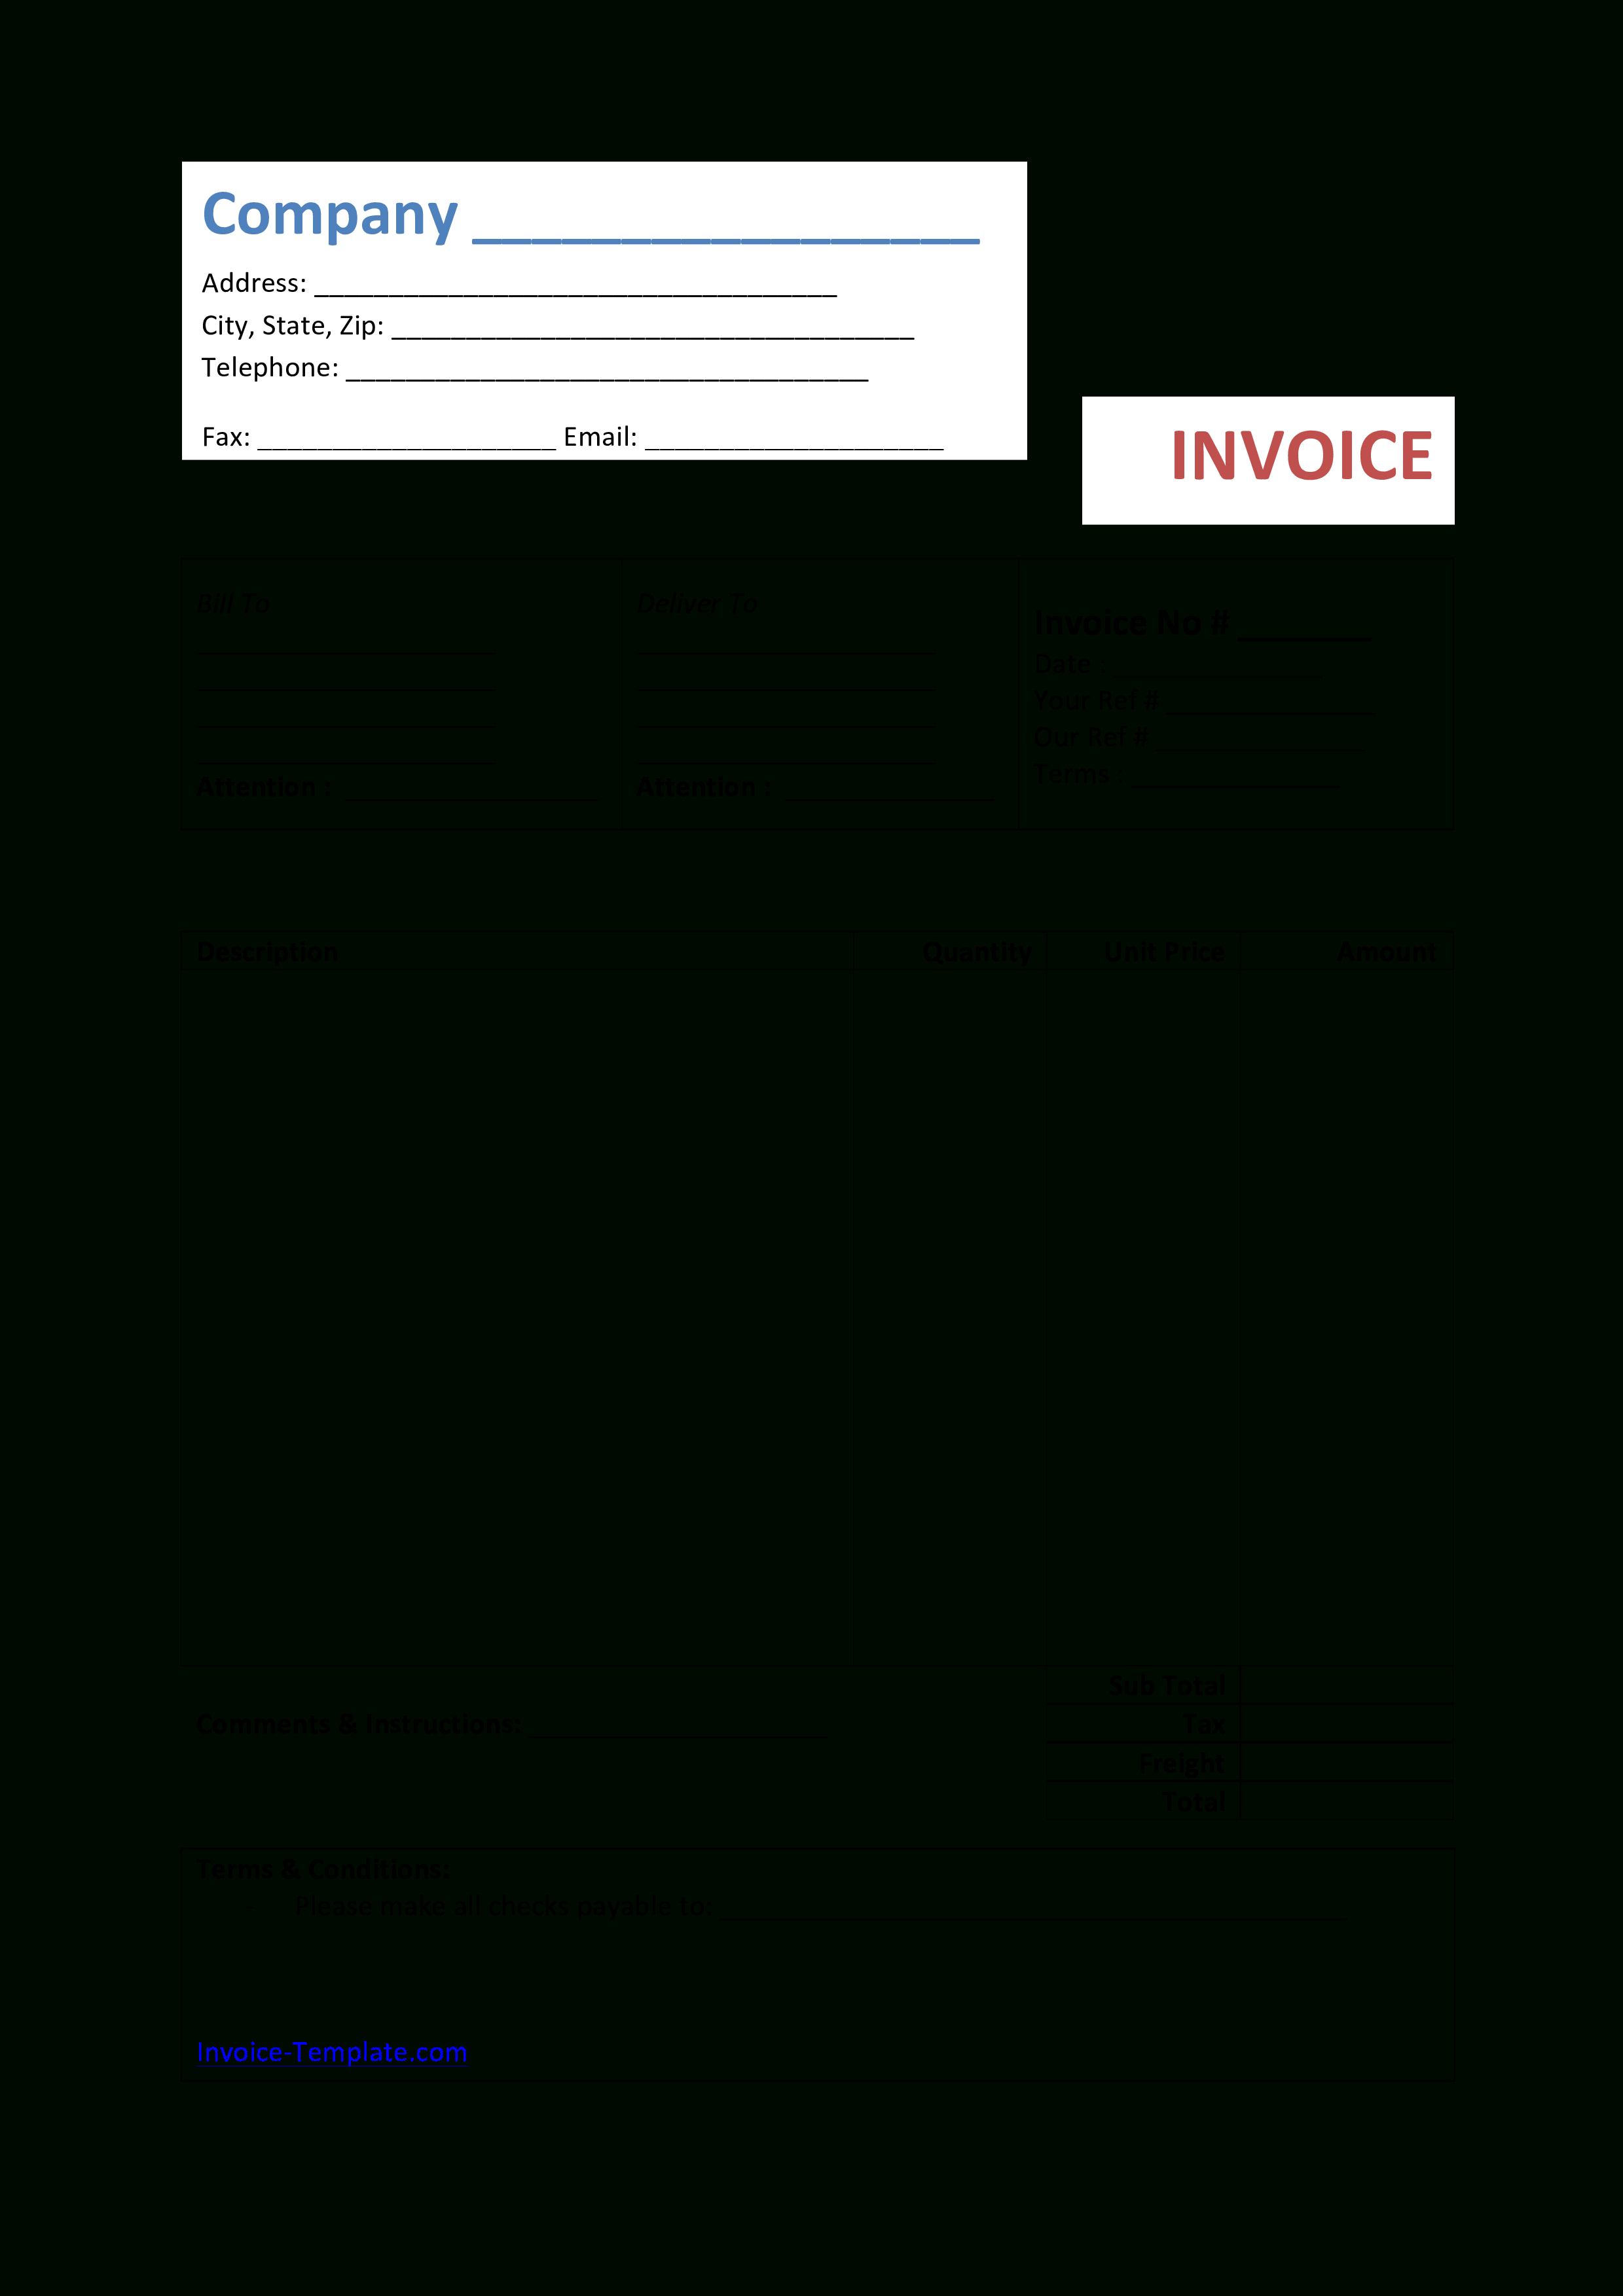 Free Bakery Invoice Template Word  Lovely Documents Ideas Awesome Intended For Bakery Invoice Template